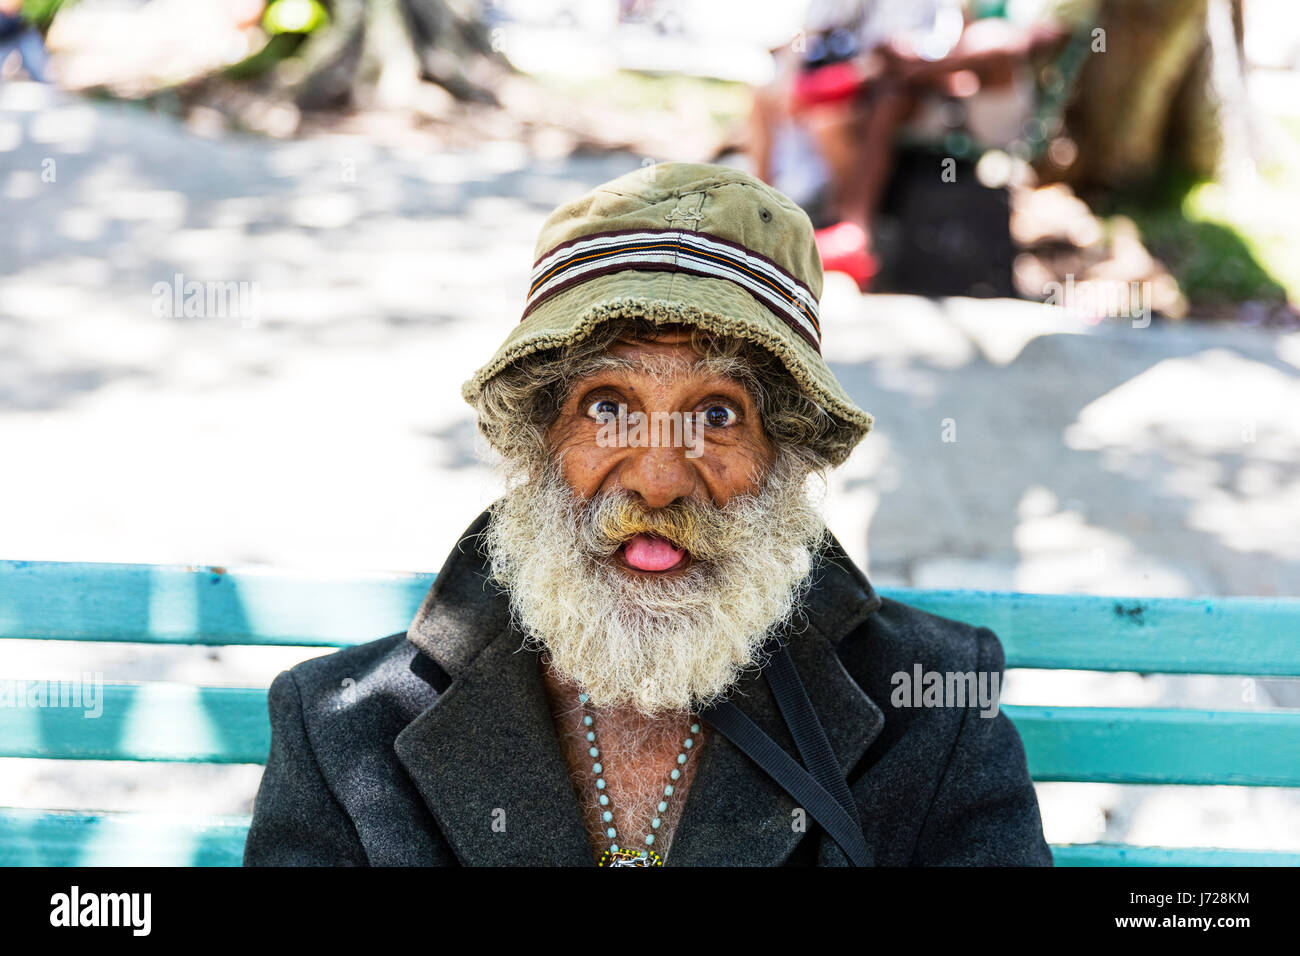 Cuban man, Cuban tramp, cuban vagrant, poverty in cuba, funny old man, cuban man, funny man, man sticking out tongue, - Stock Image